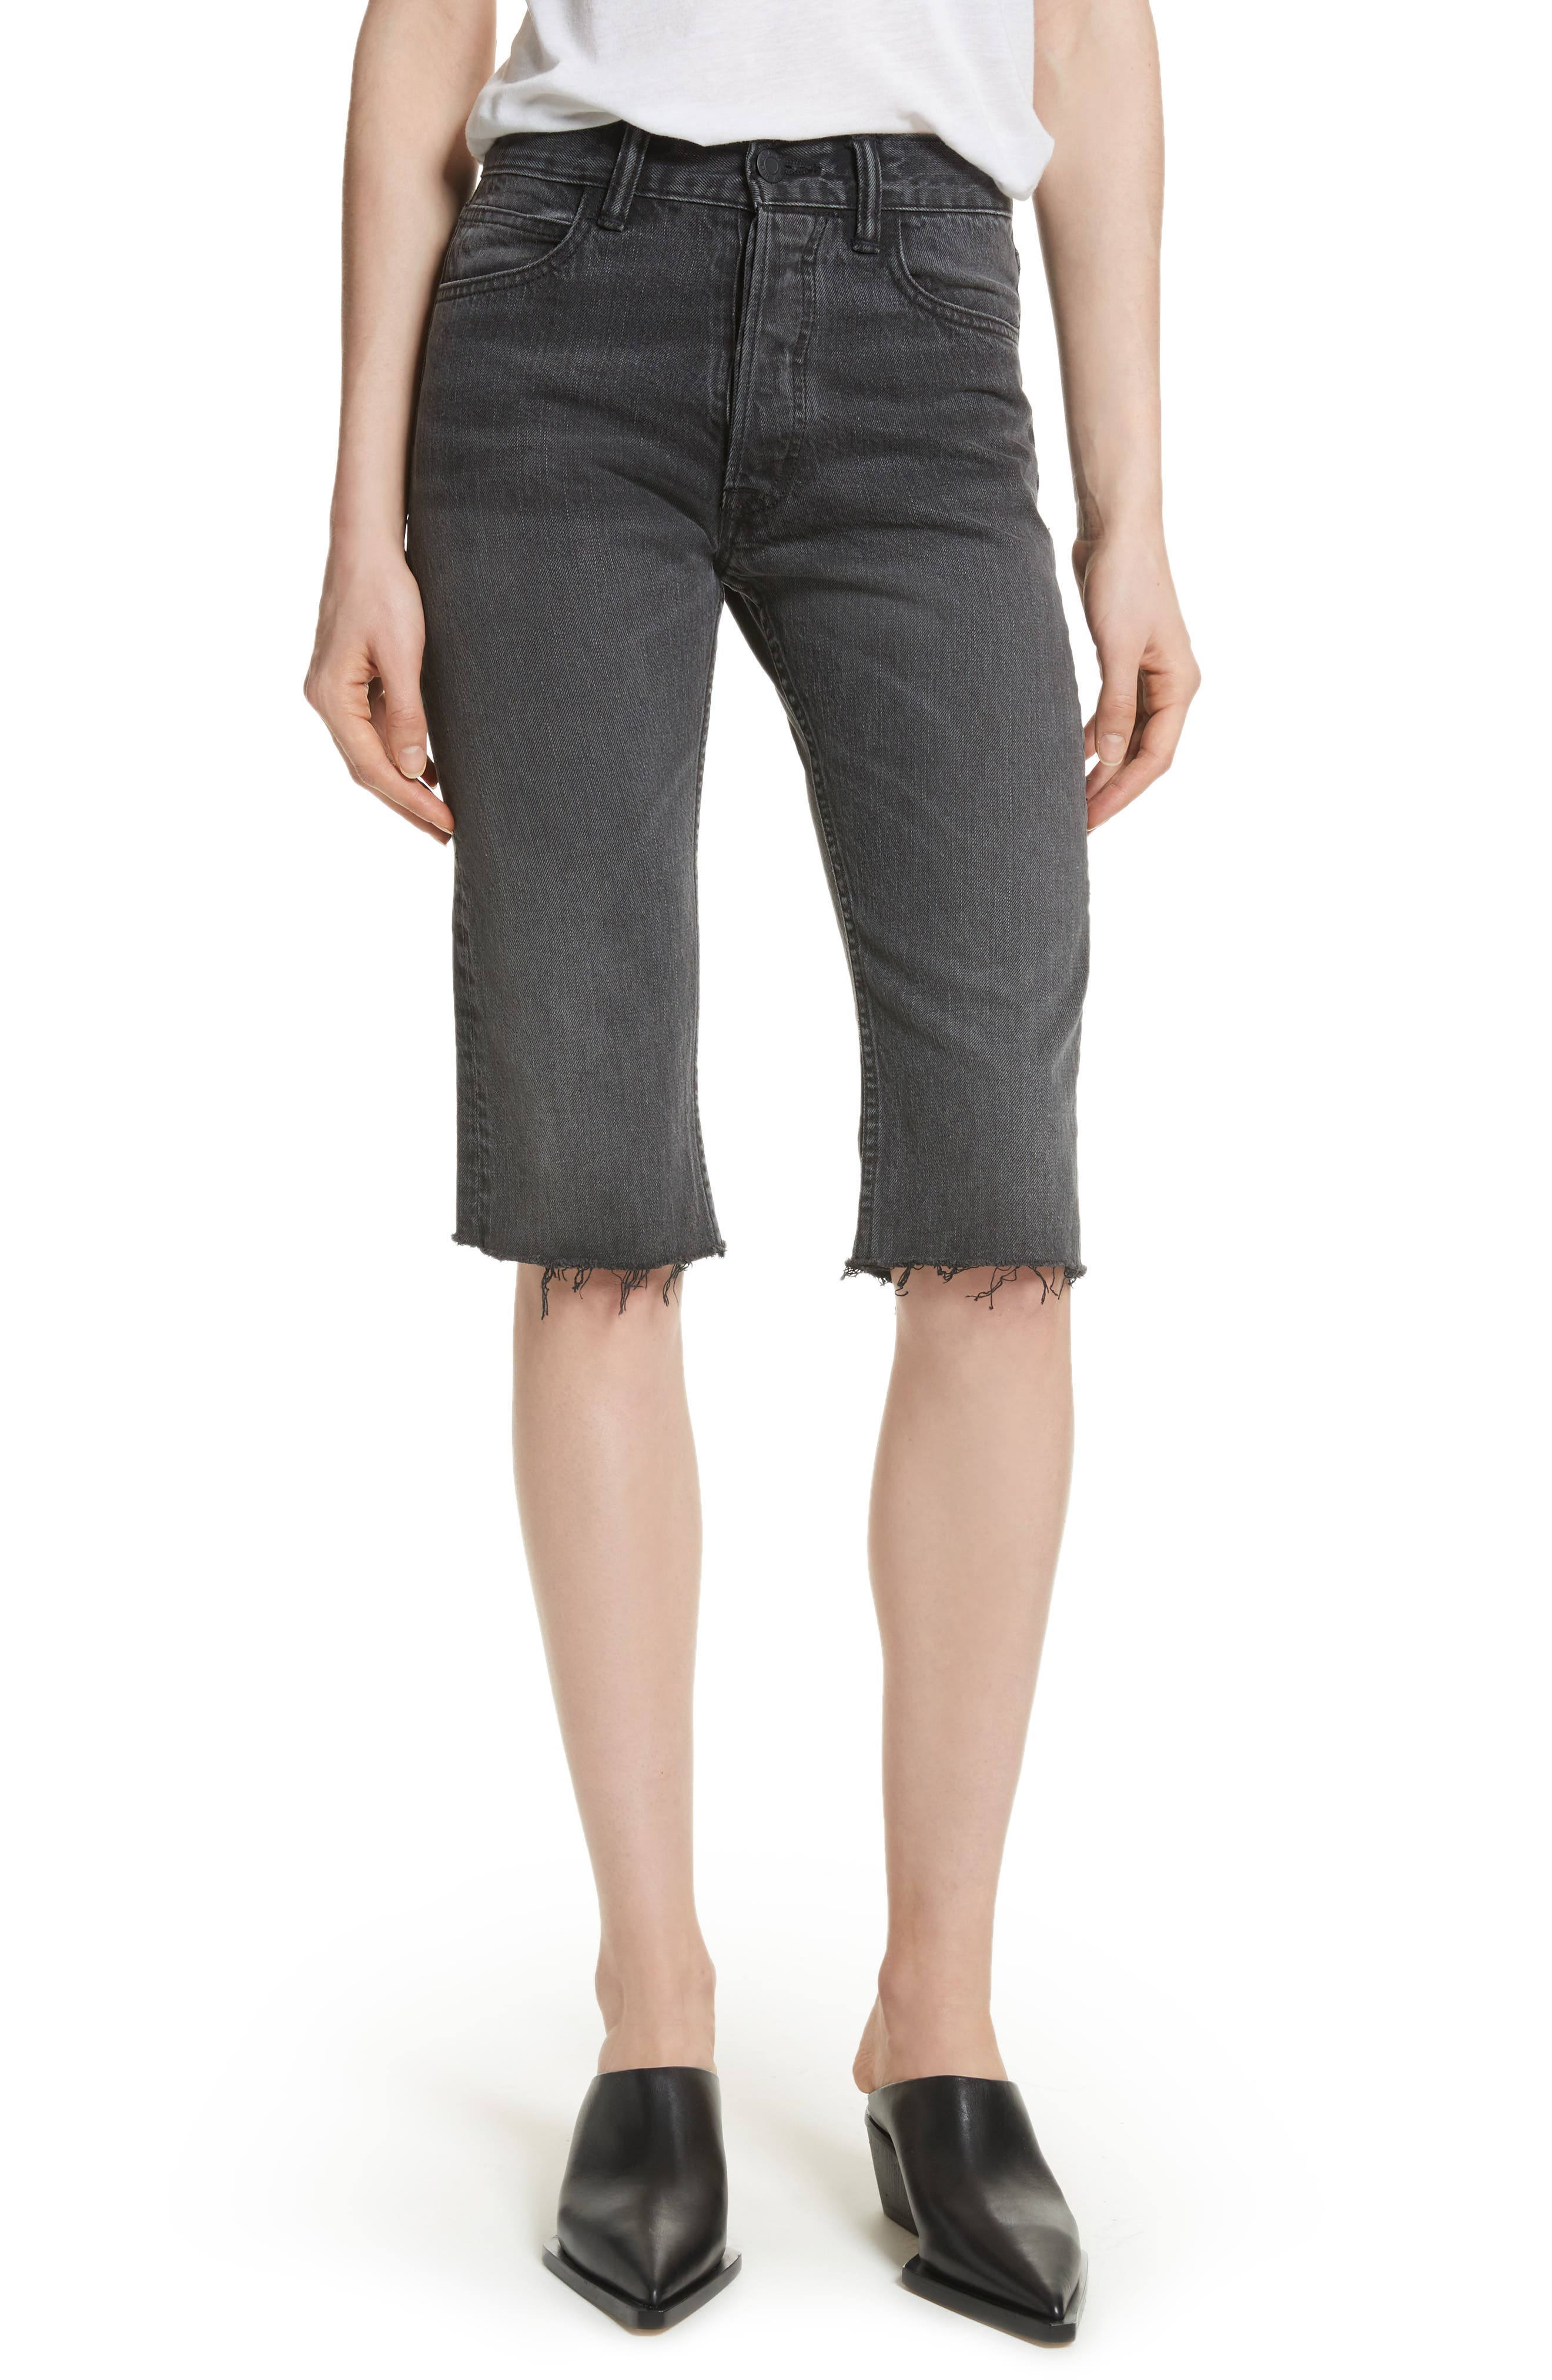 Helmut Lang Cutoff Knee Length Denim Shorts